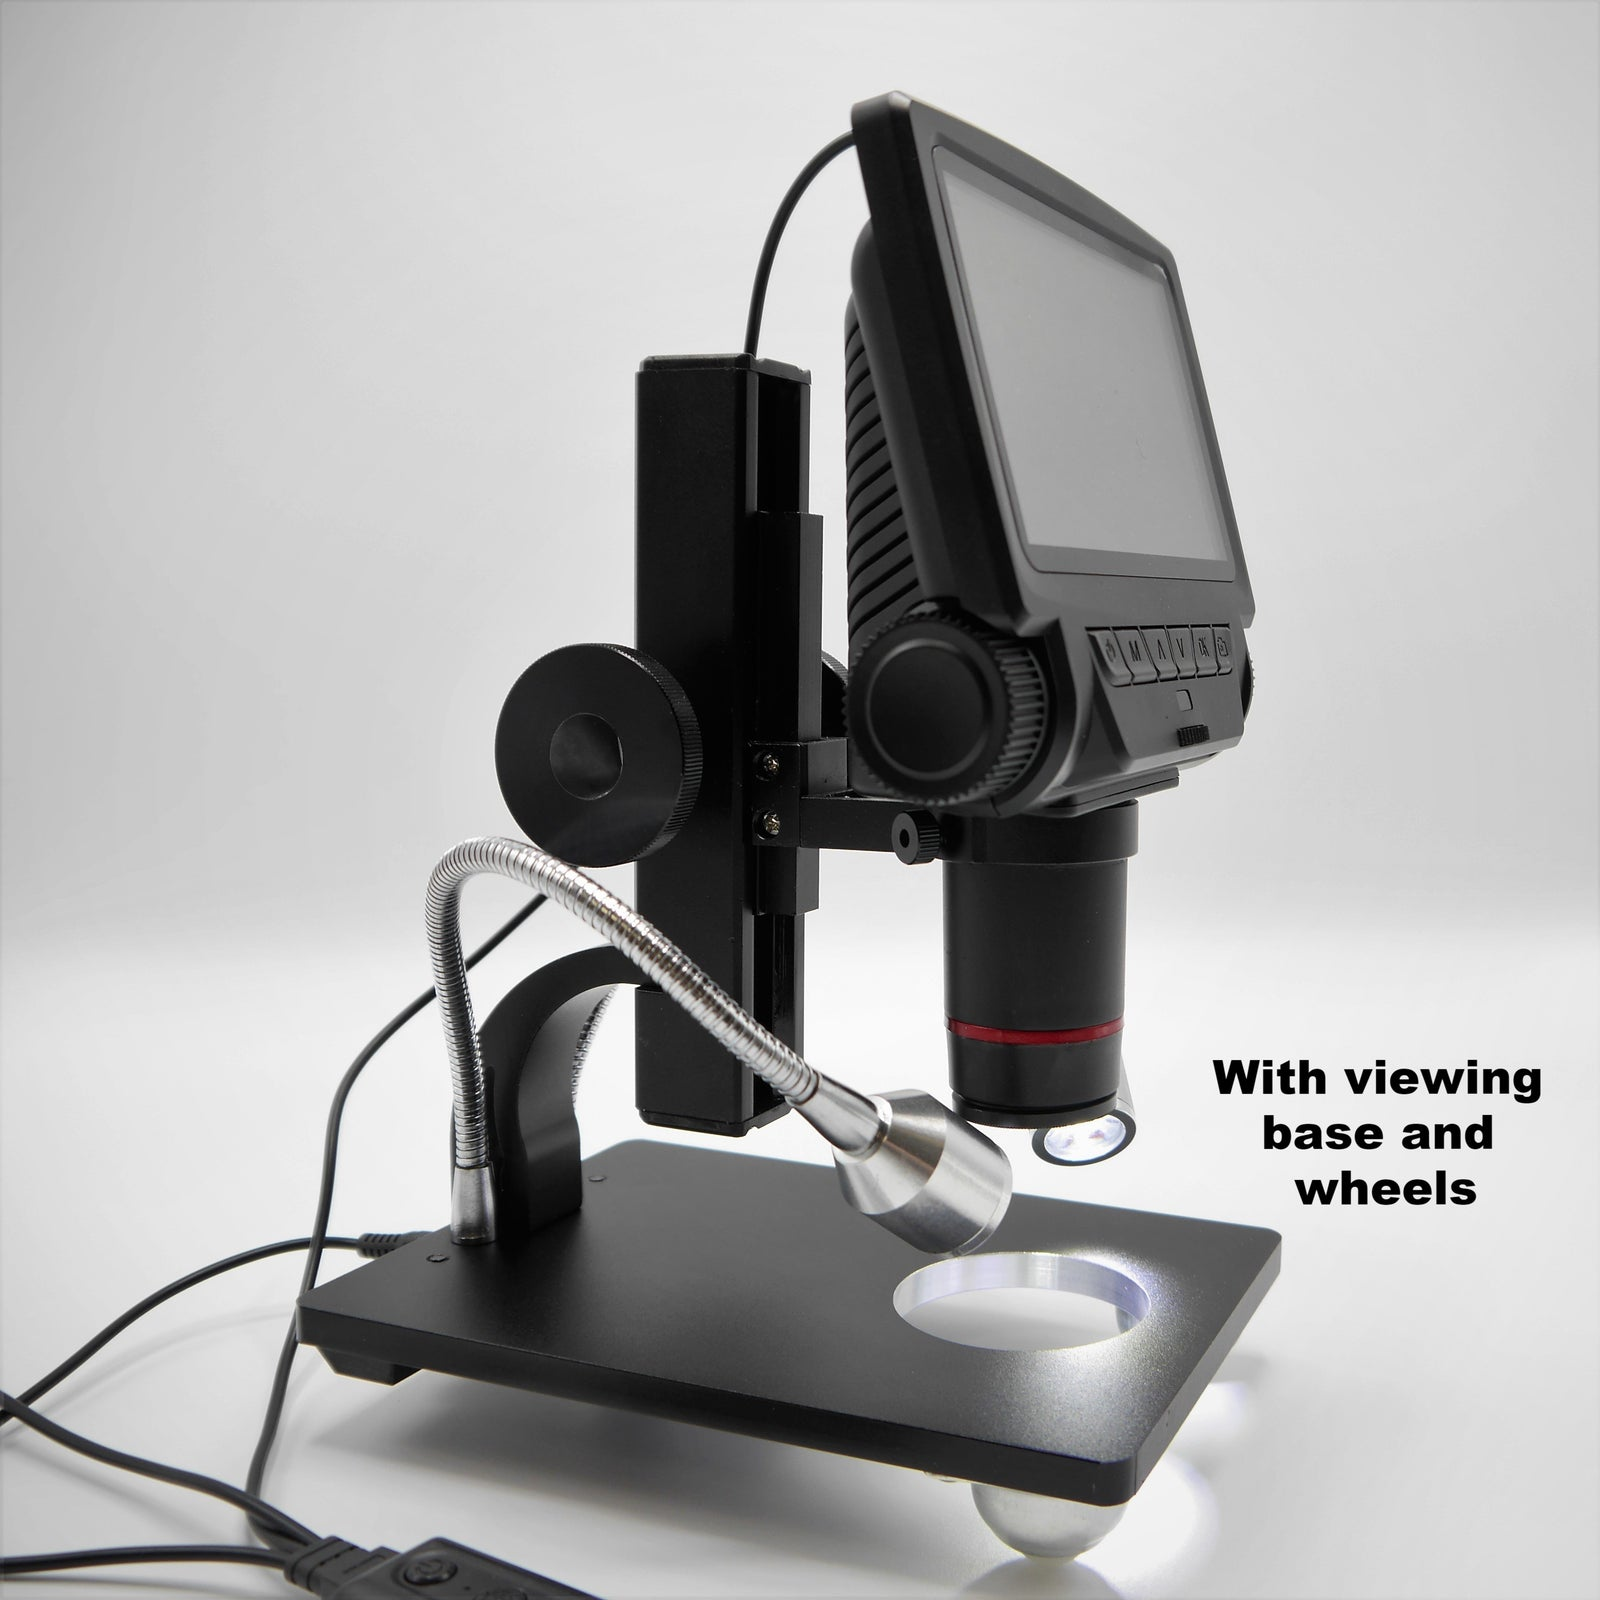 MI-HDMI-V5M dual output digital video microscope